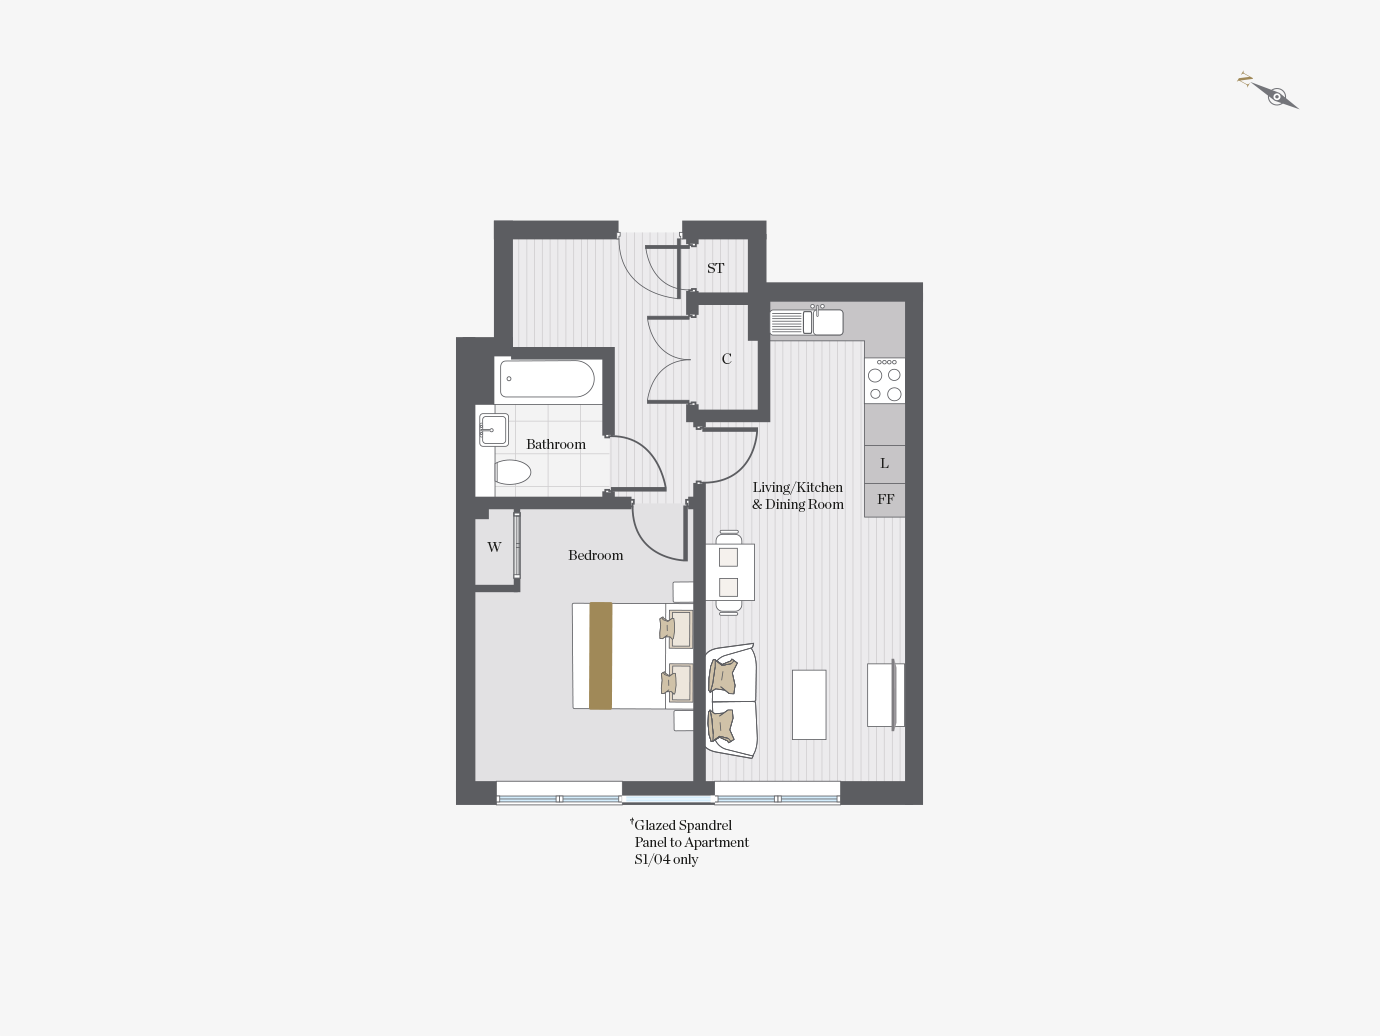 Floorplan for S2/11 at City Wharf, Second